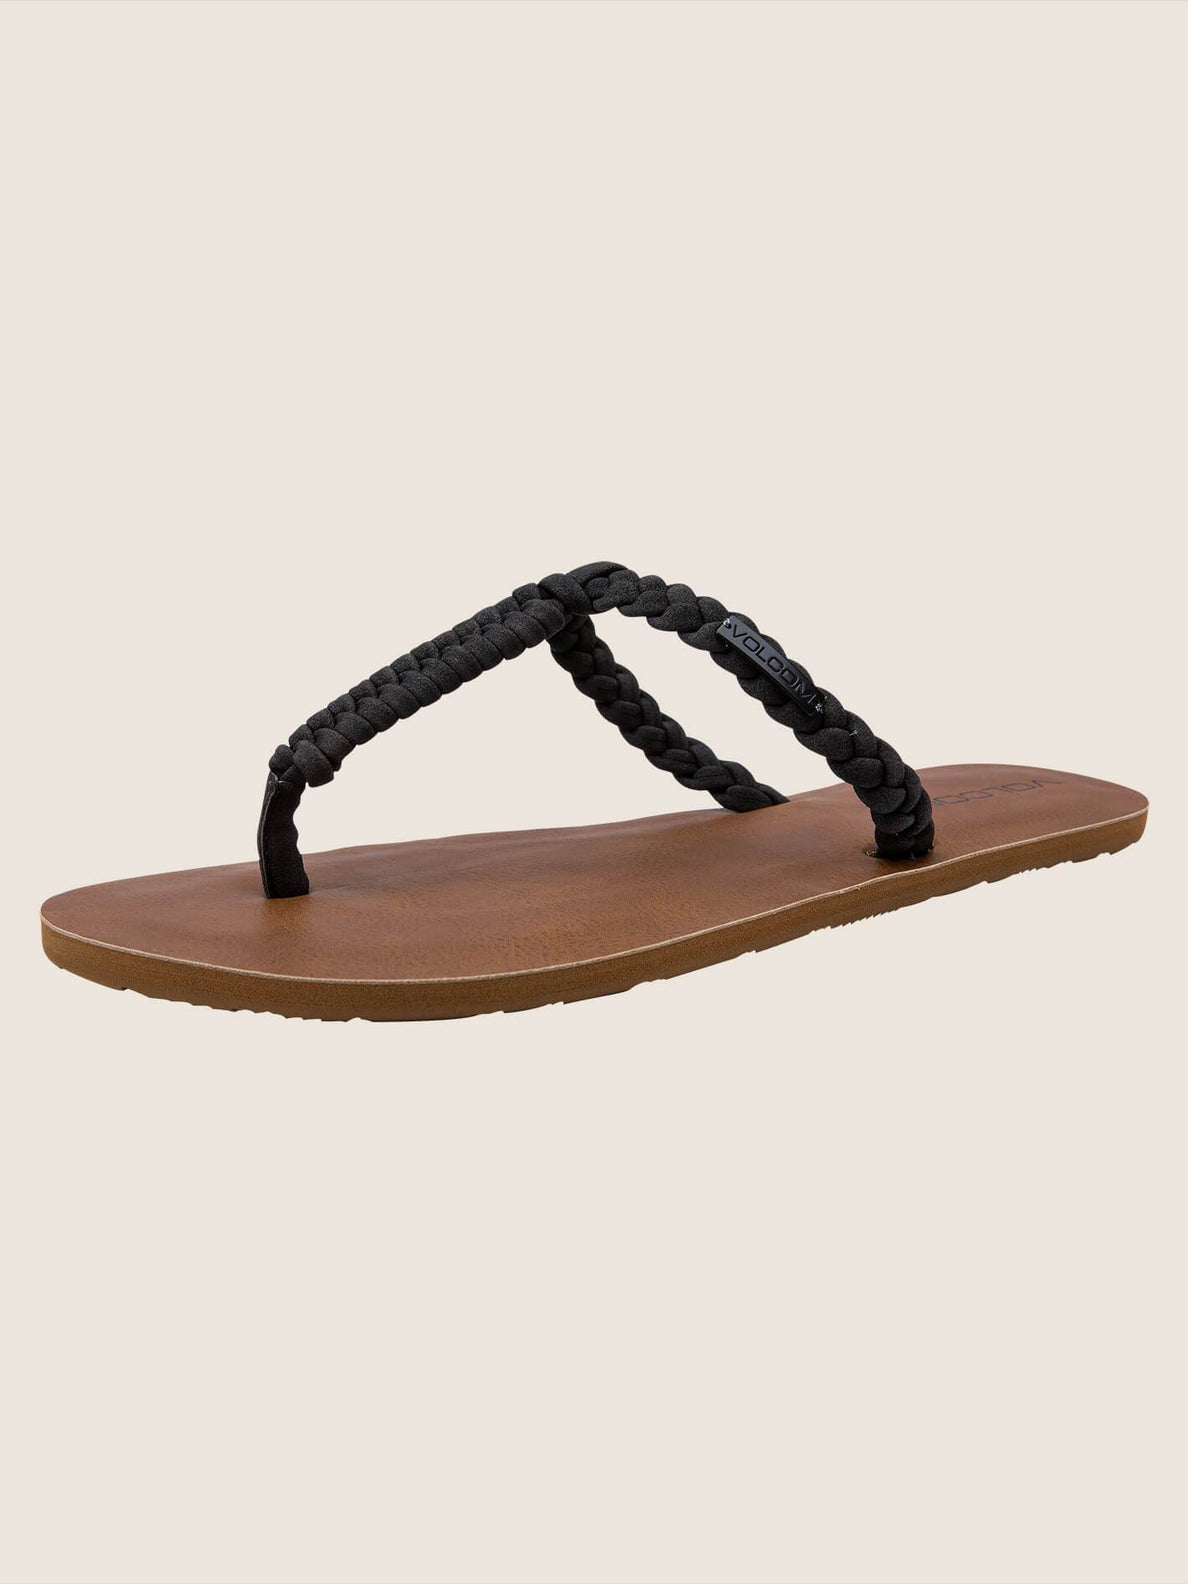 Fishtail Sandals In Black, Back View